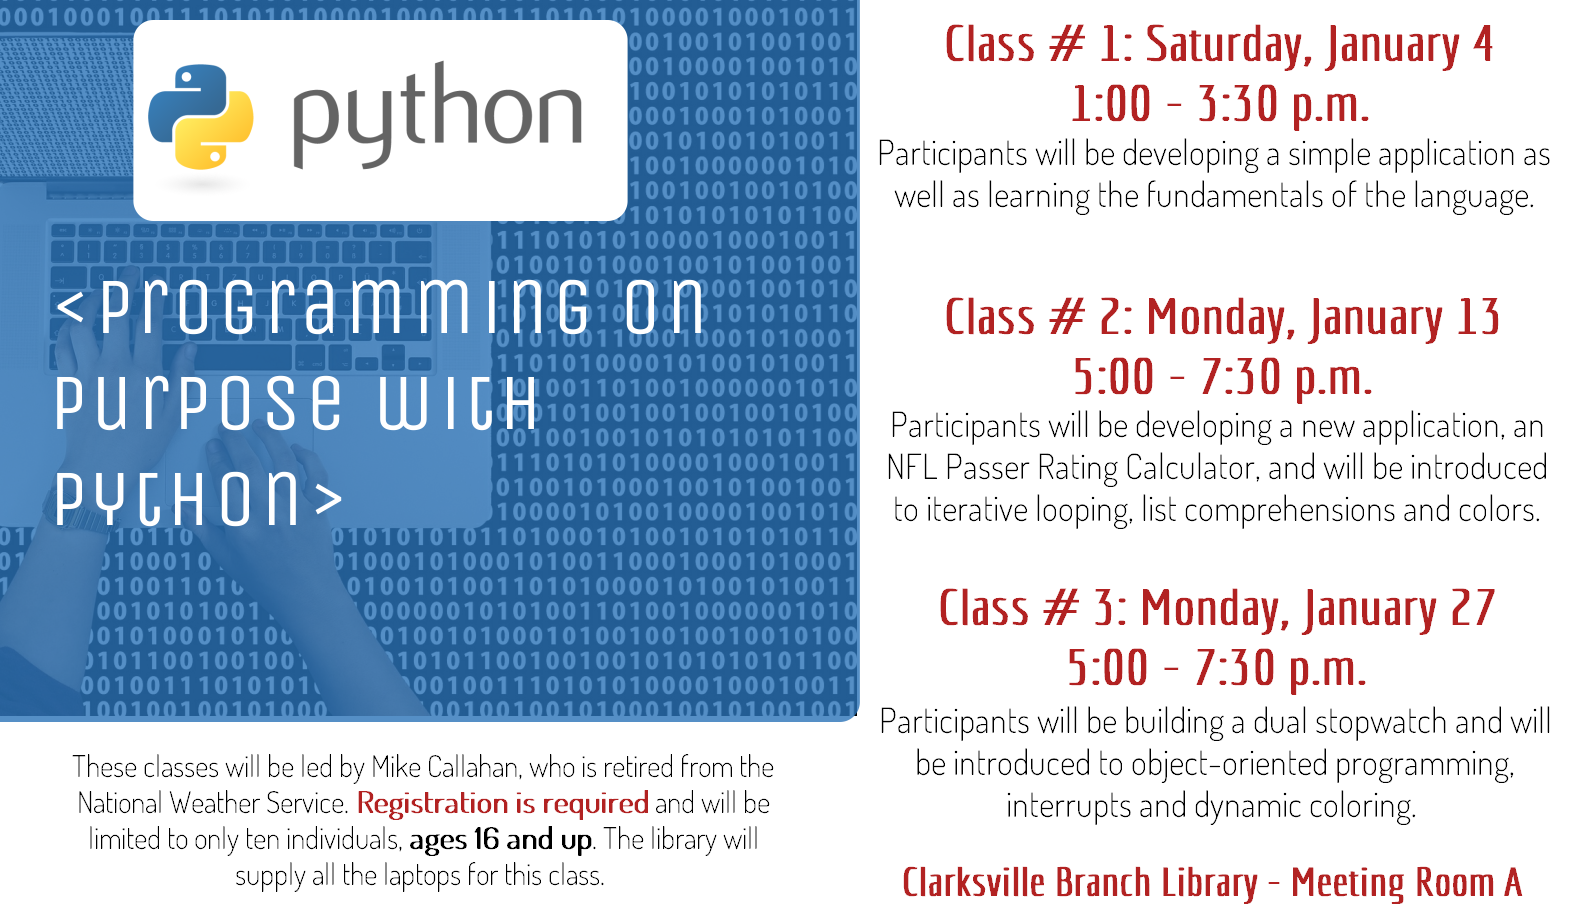 Flyer advertising Python programming classes on 4, 13, and 27 January 2020